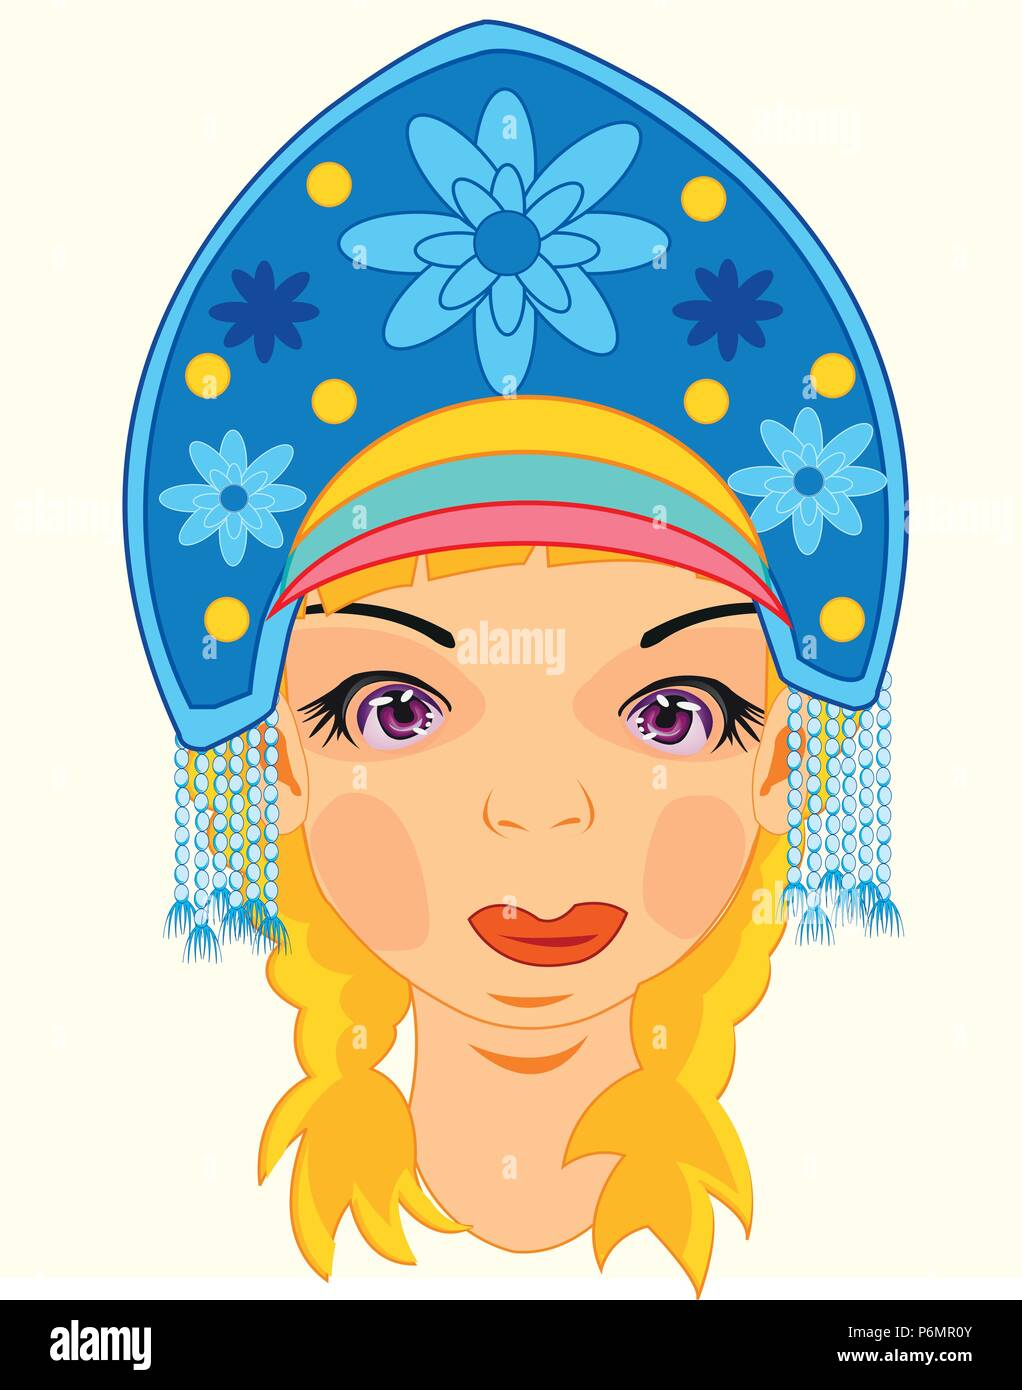 Girl in national headdress woman s headdress - Stock Image